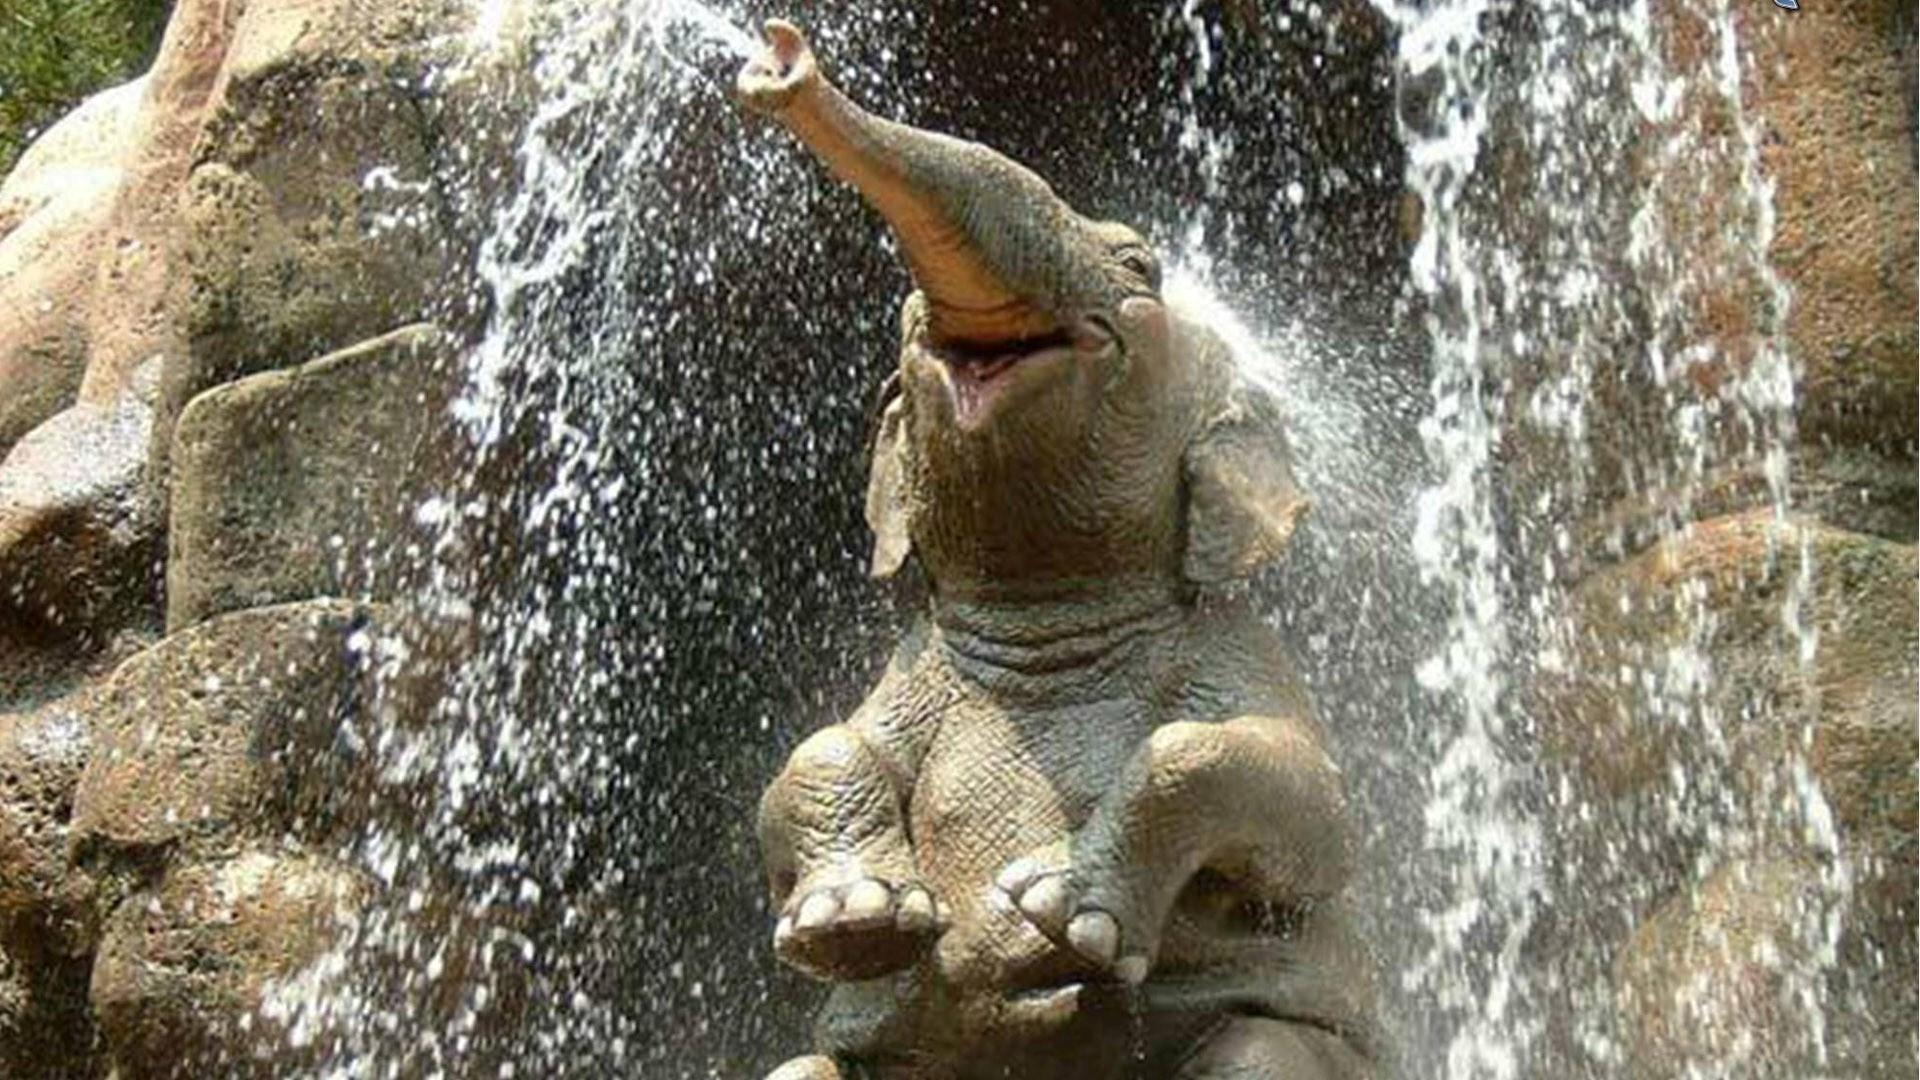 Elephant Bath in Waterfall Funny Photo | HD Wallpapers